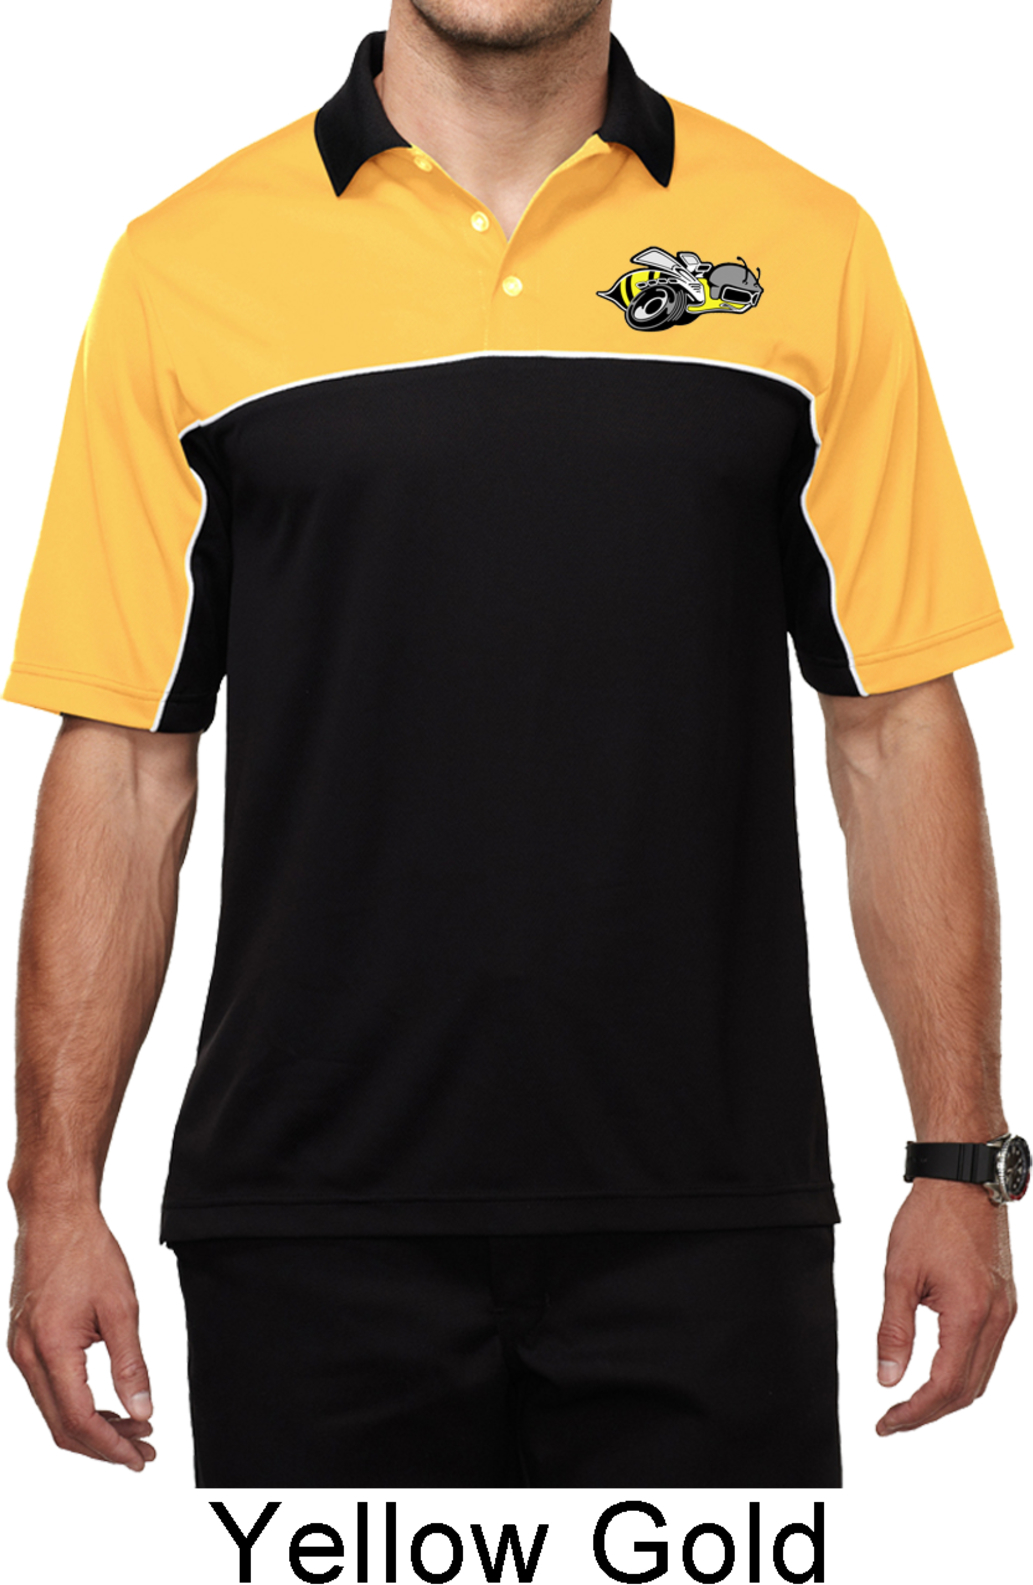 174c784220 Dodge Super Bee Logo Pocket Print Mens Yellow Gold Polo .